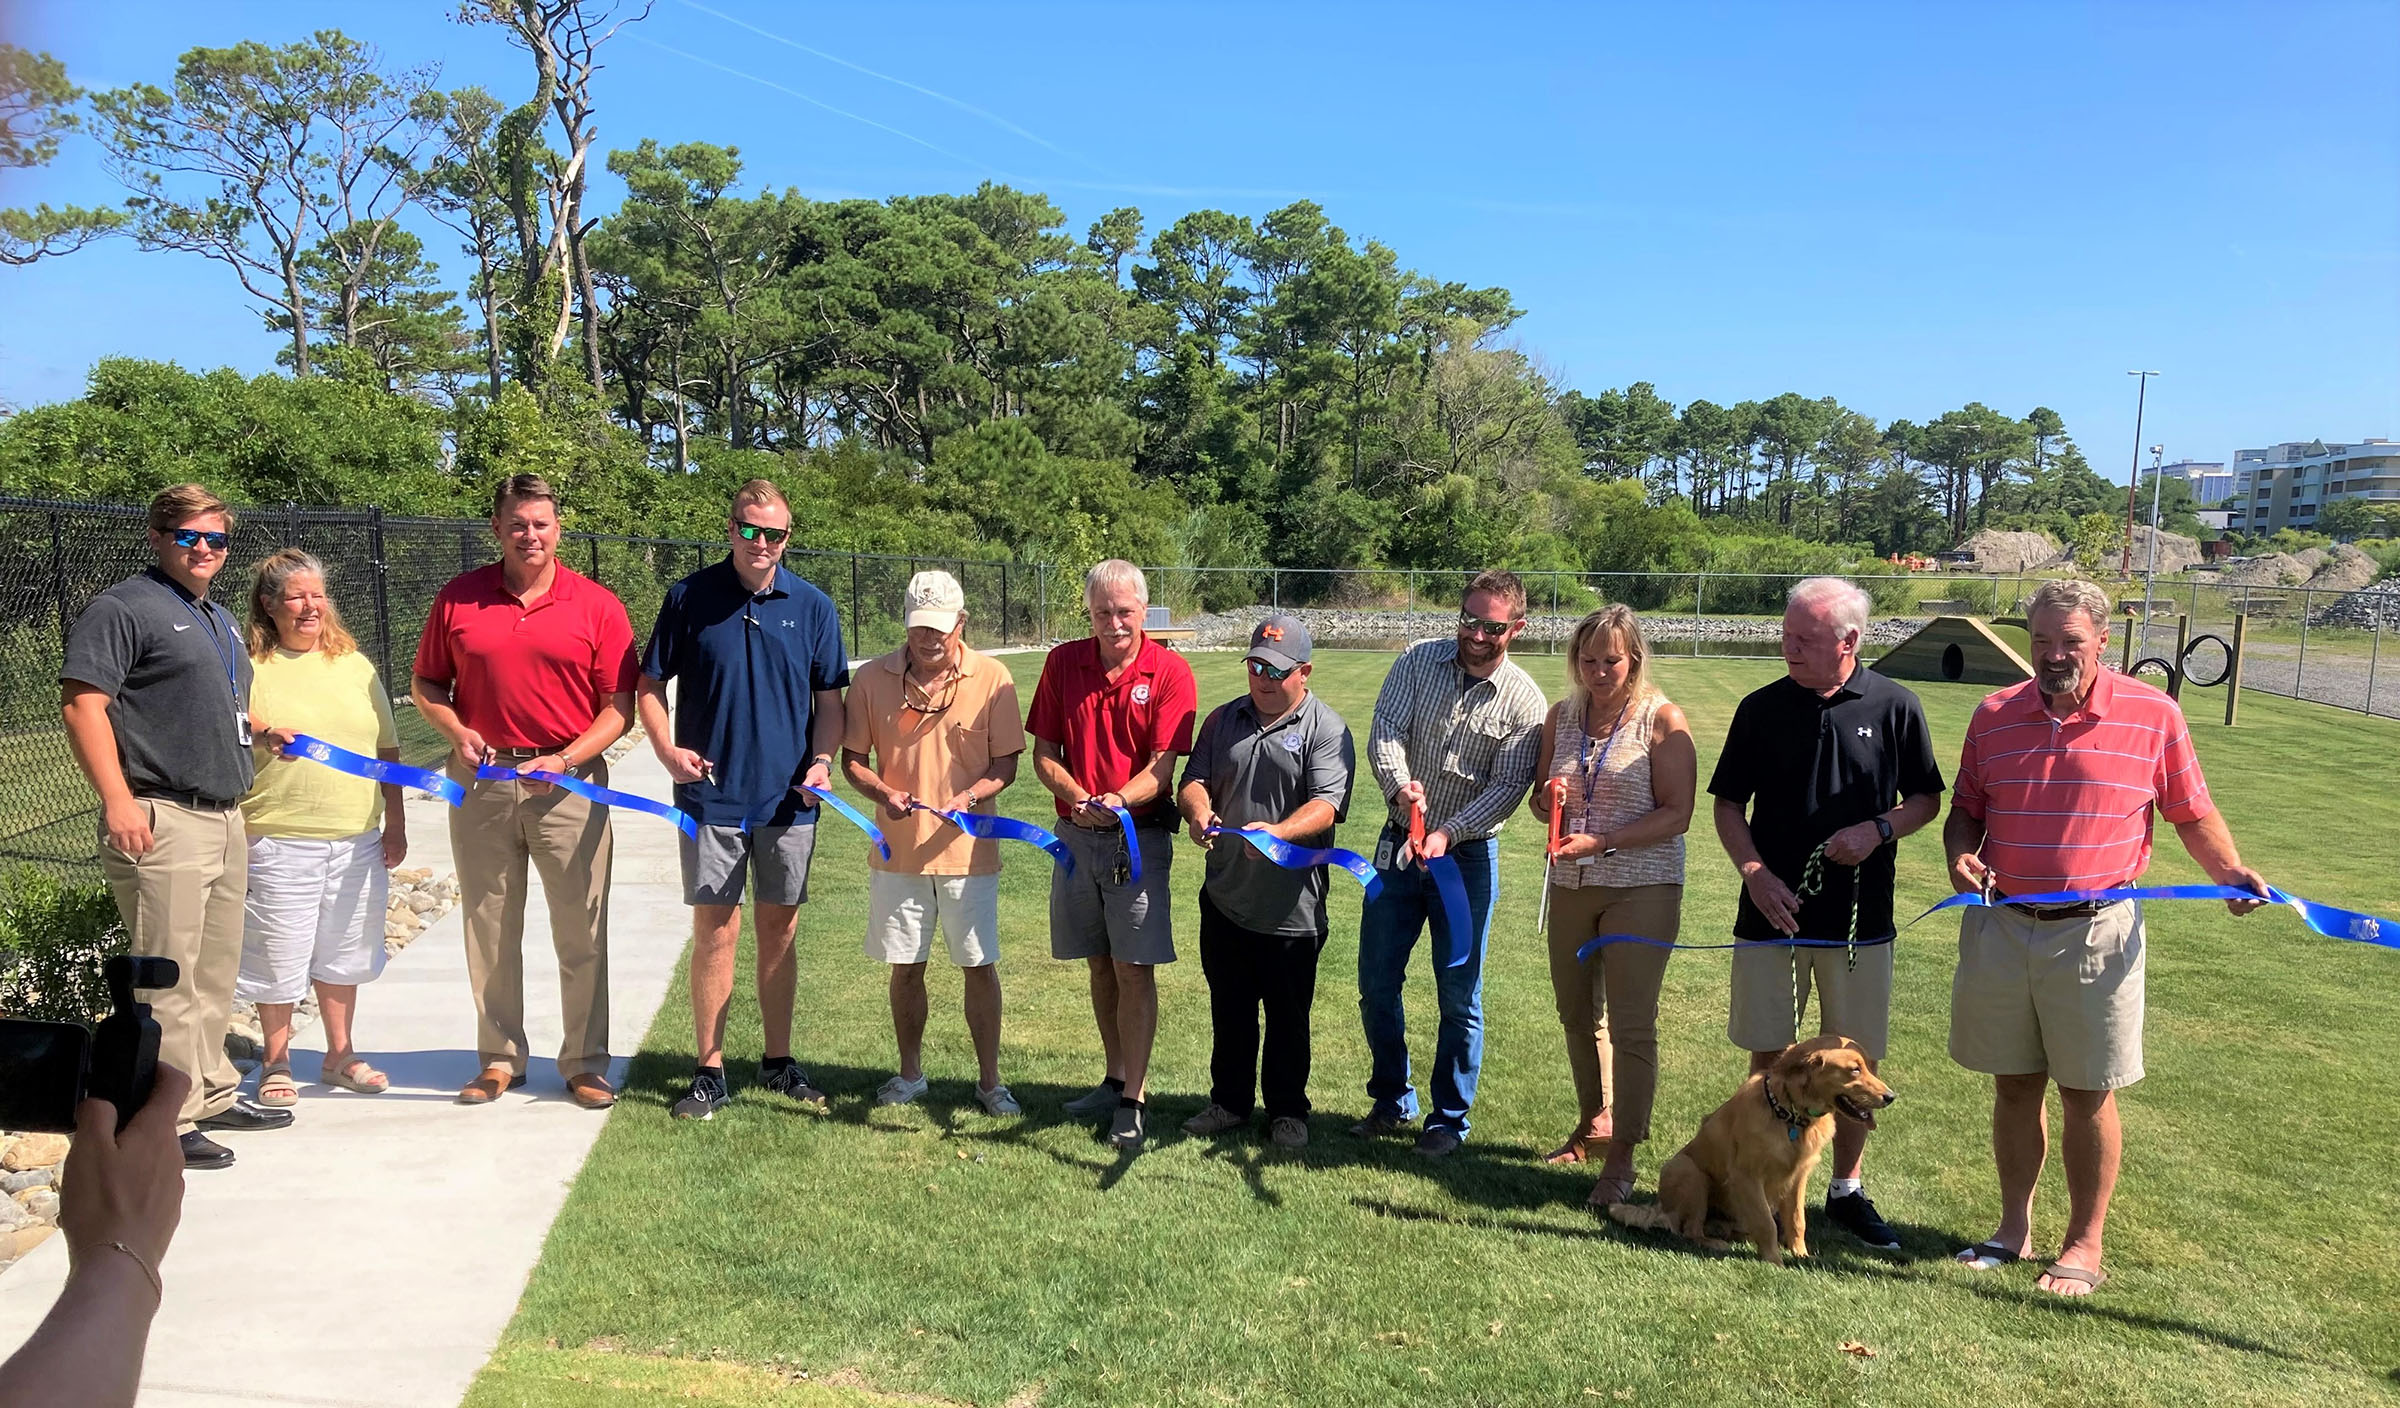 Ocean City's expanded dog park has officially opened